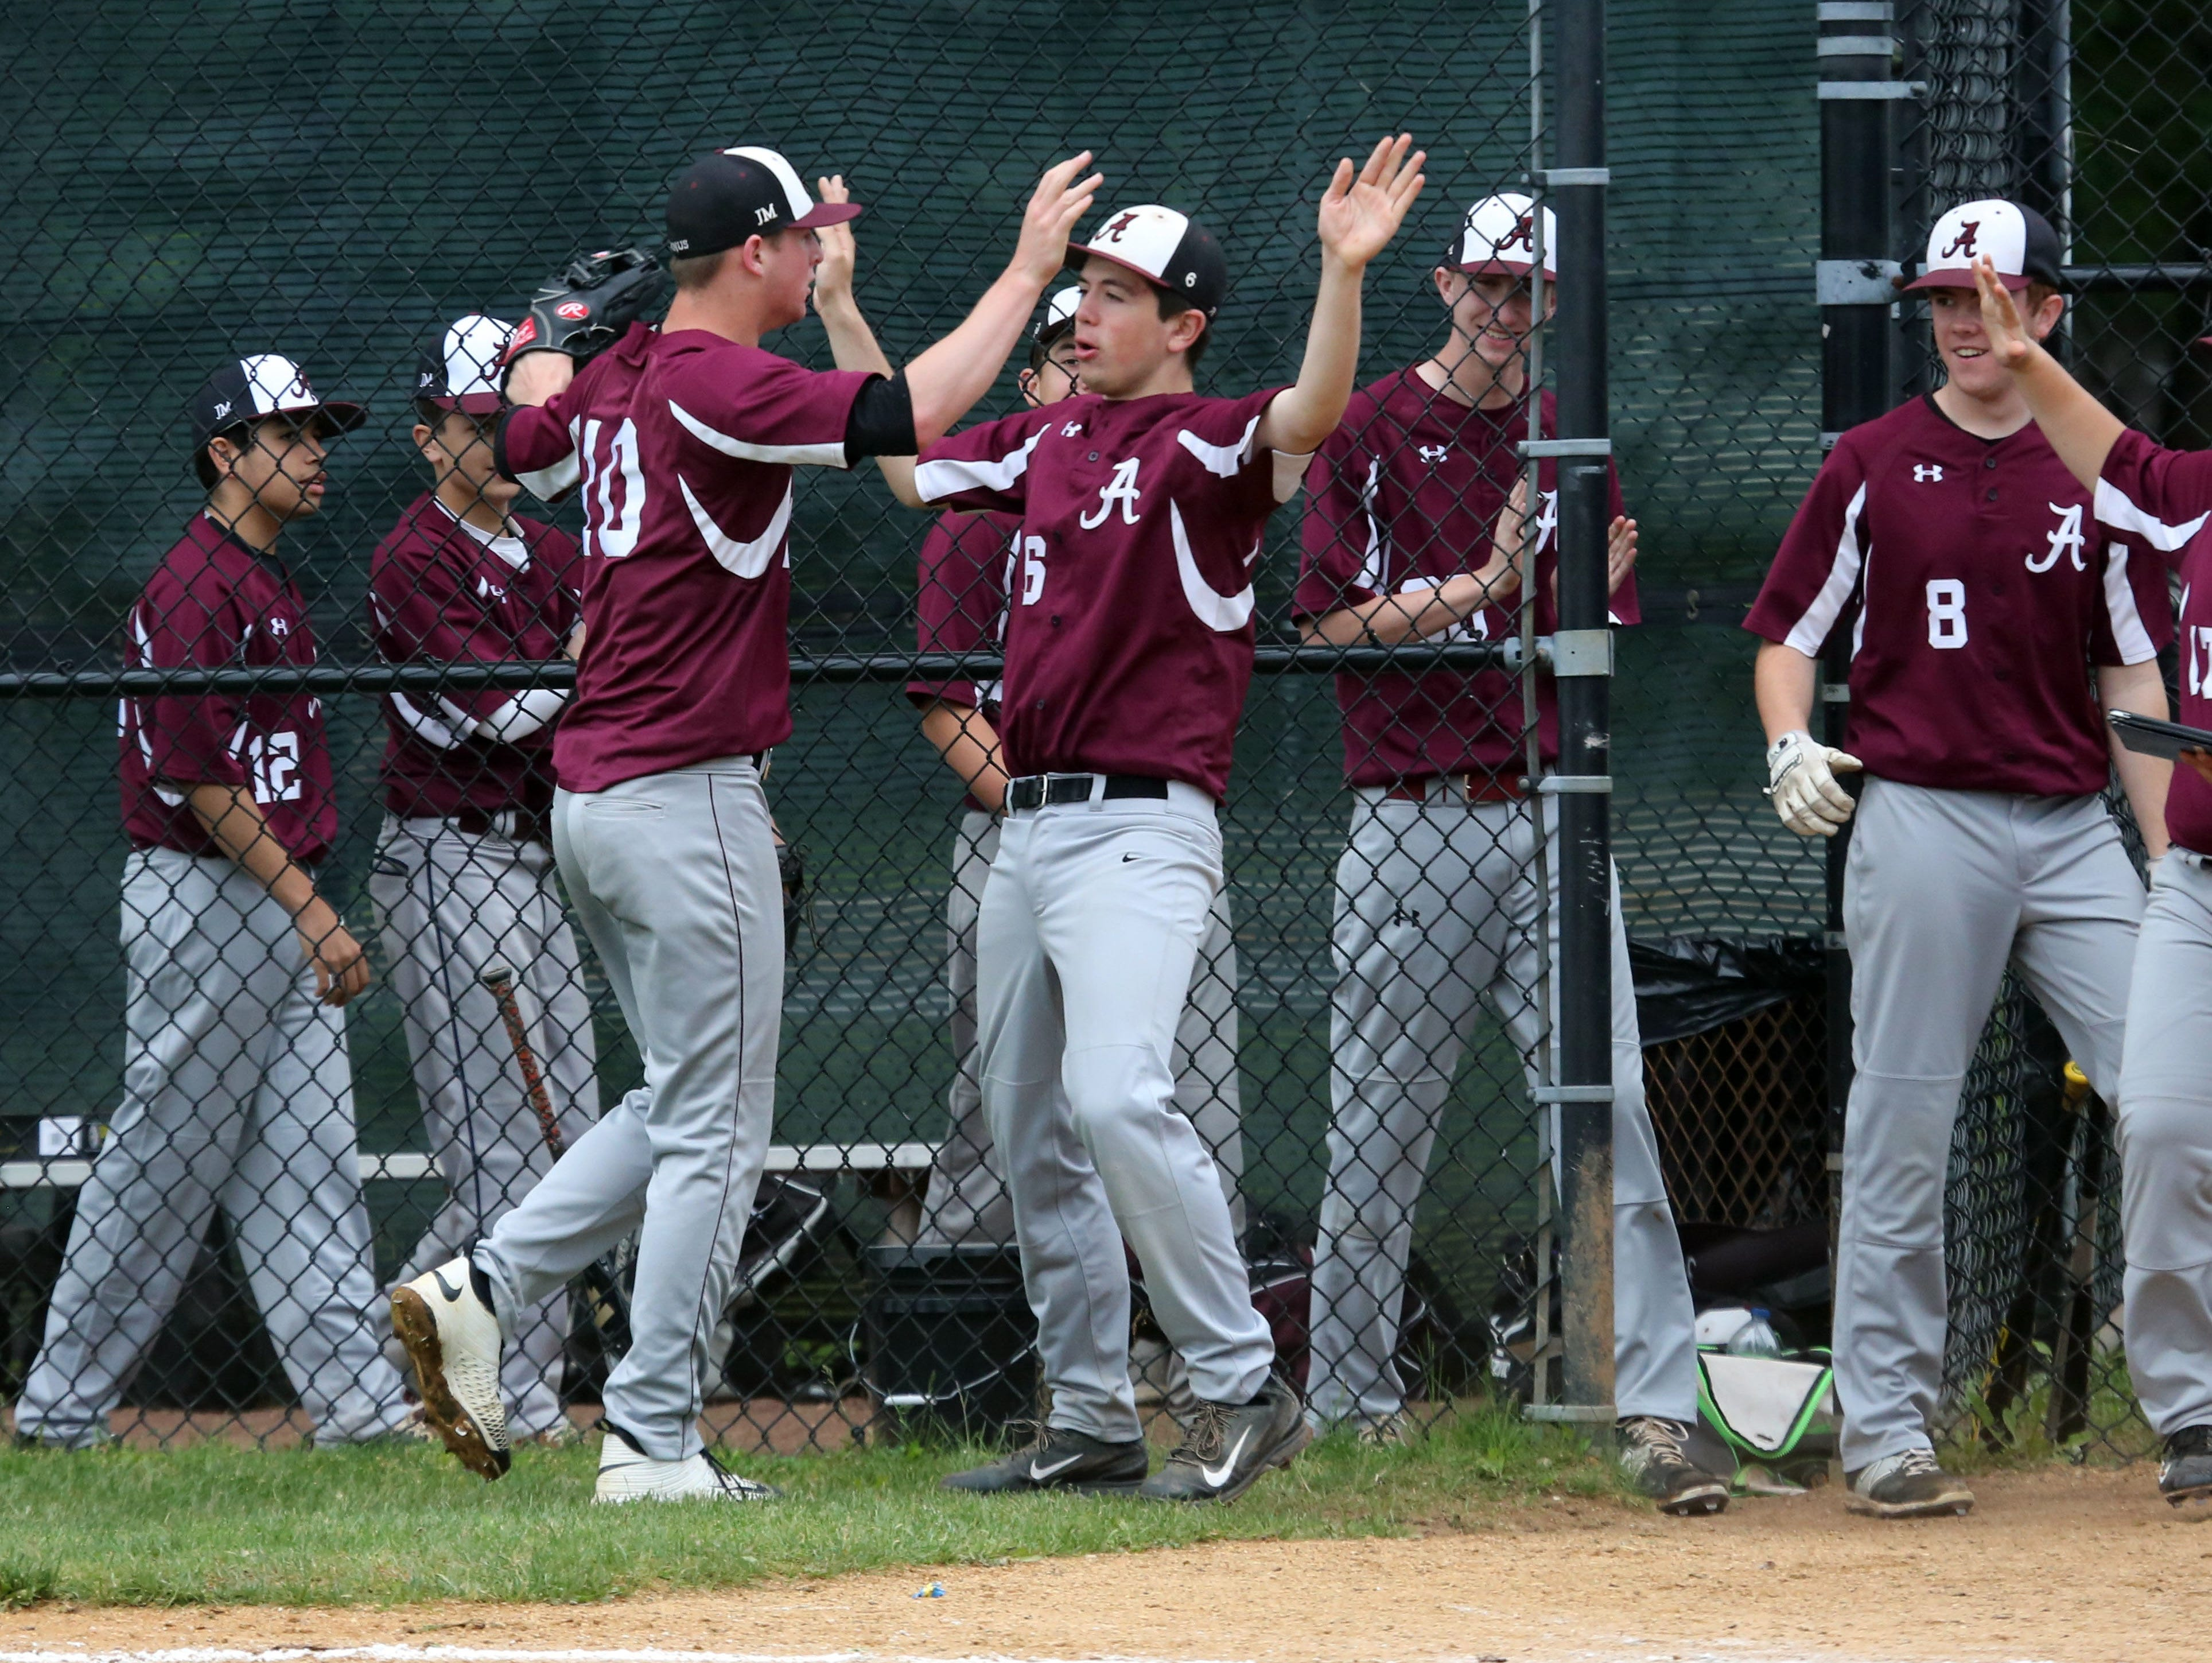 Albertus Magnus pitcher James Reilly is greeted at the dugout by teammates during their Class B game against Ardsley at Ardsley High School, May 21, 2016.